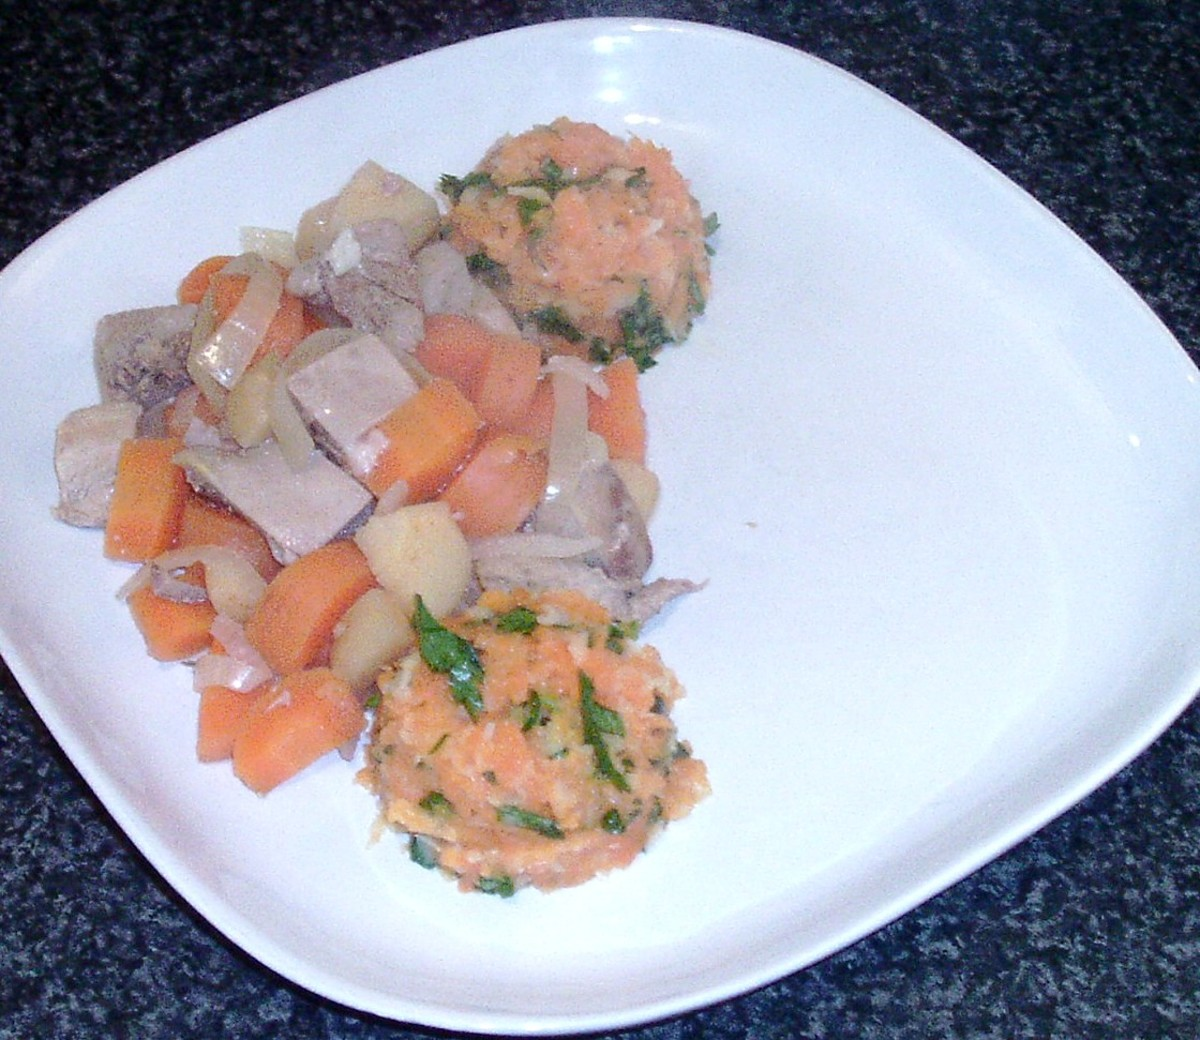 Pie filling is plated with mashed vegetables